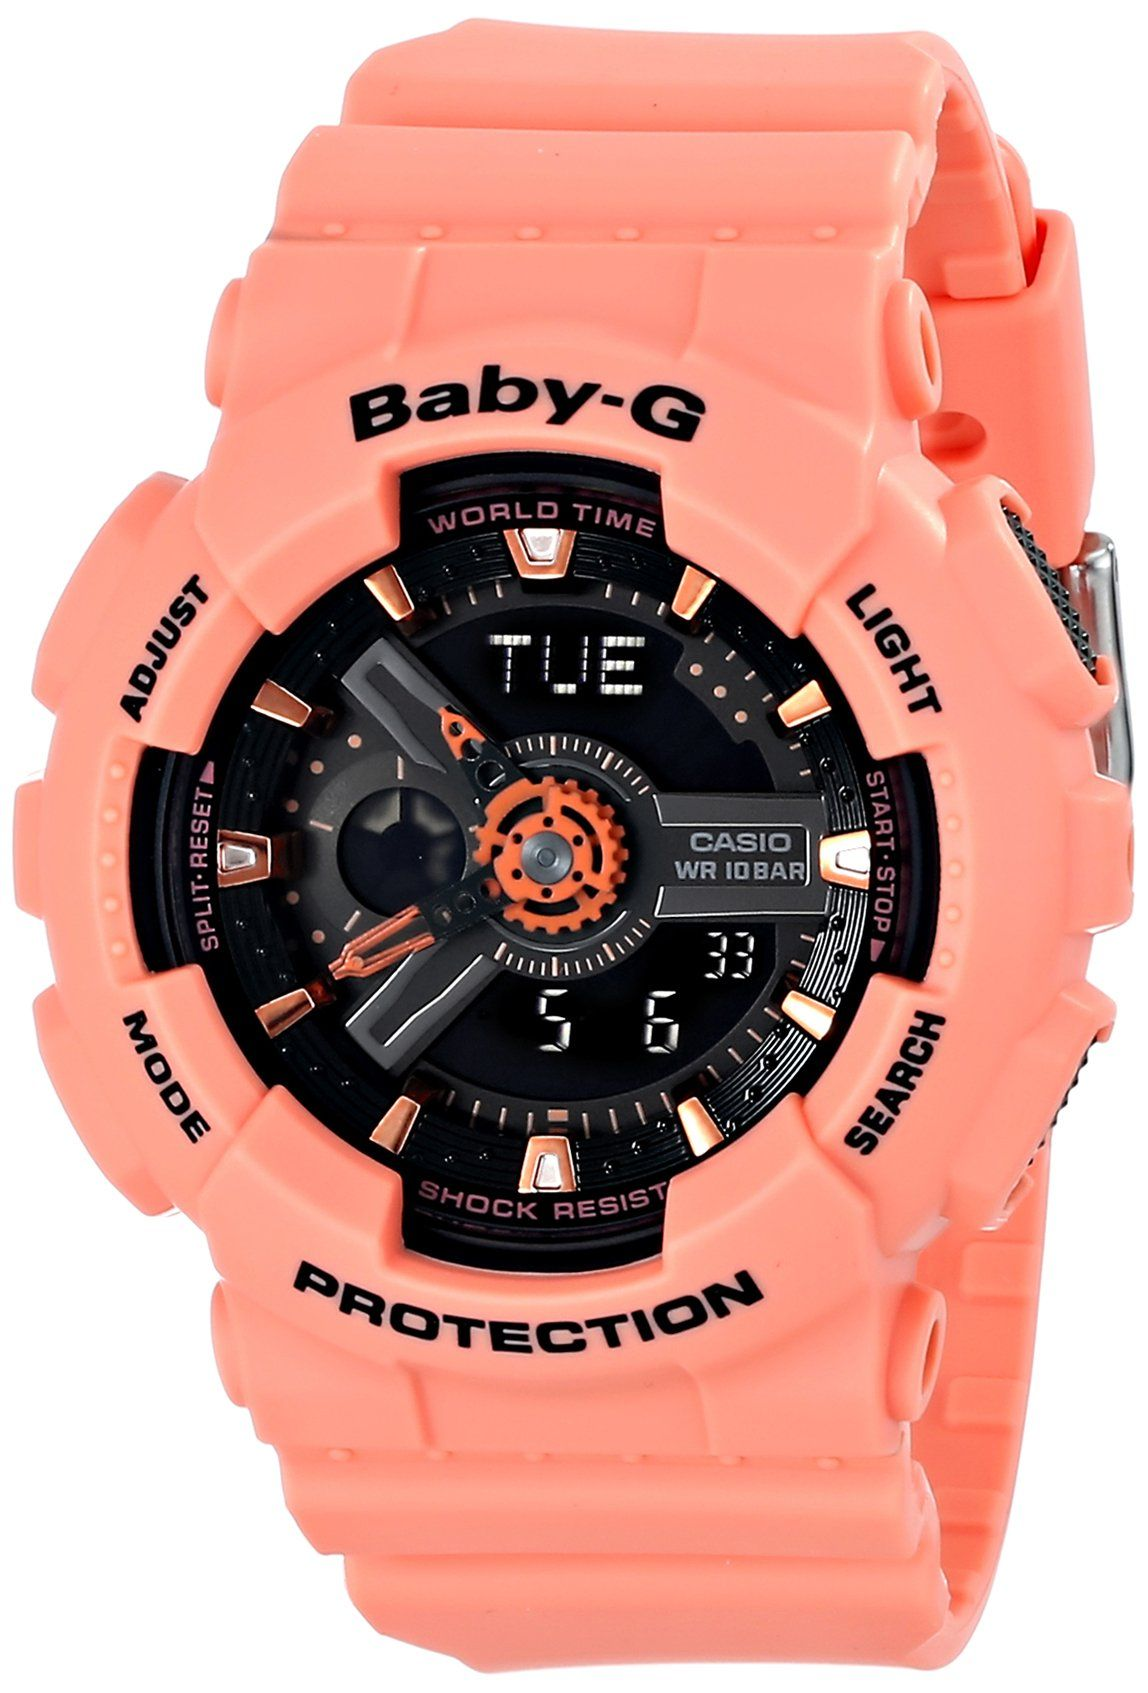 d8dd1d00e39f3 Amazon.com  Casio Women s BA-111-4A2CR Baby-G-Digital Orange Watch  Casio   Watches